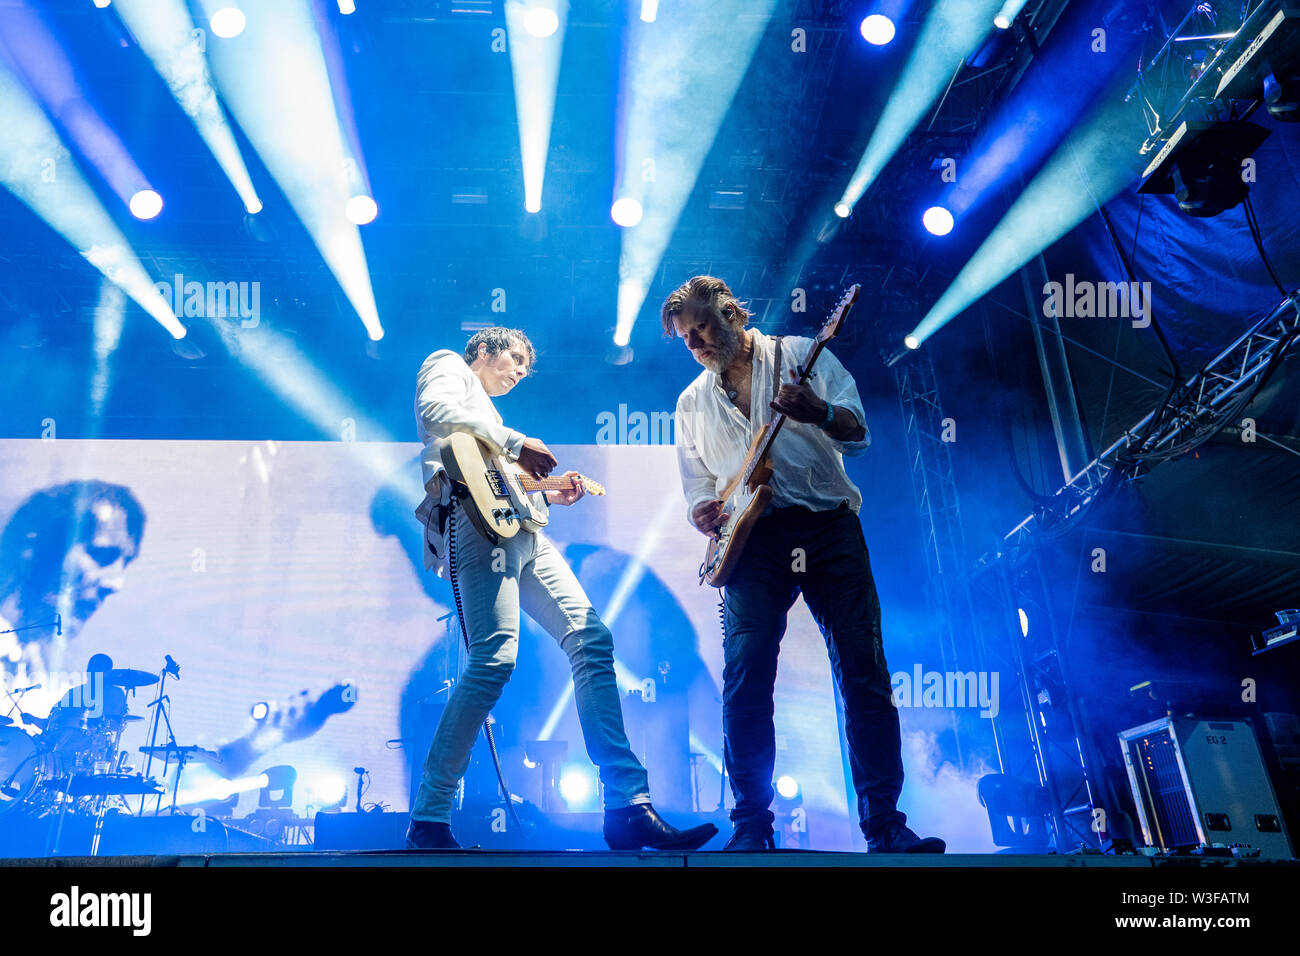 Bergen, Norway - June 13th, 2019. The Norwegian rock Madrugada performs a live concert during the Norwegian music festival Bergenfest 2019 in Bergen. Here guitarists Christer Knutsen (L) and Cato Thomassen (R) are seen live on stage. (Photo credit: Gonzales Photo - Jarle H. Moe). - Stock Image